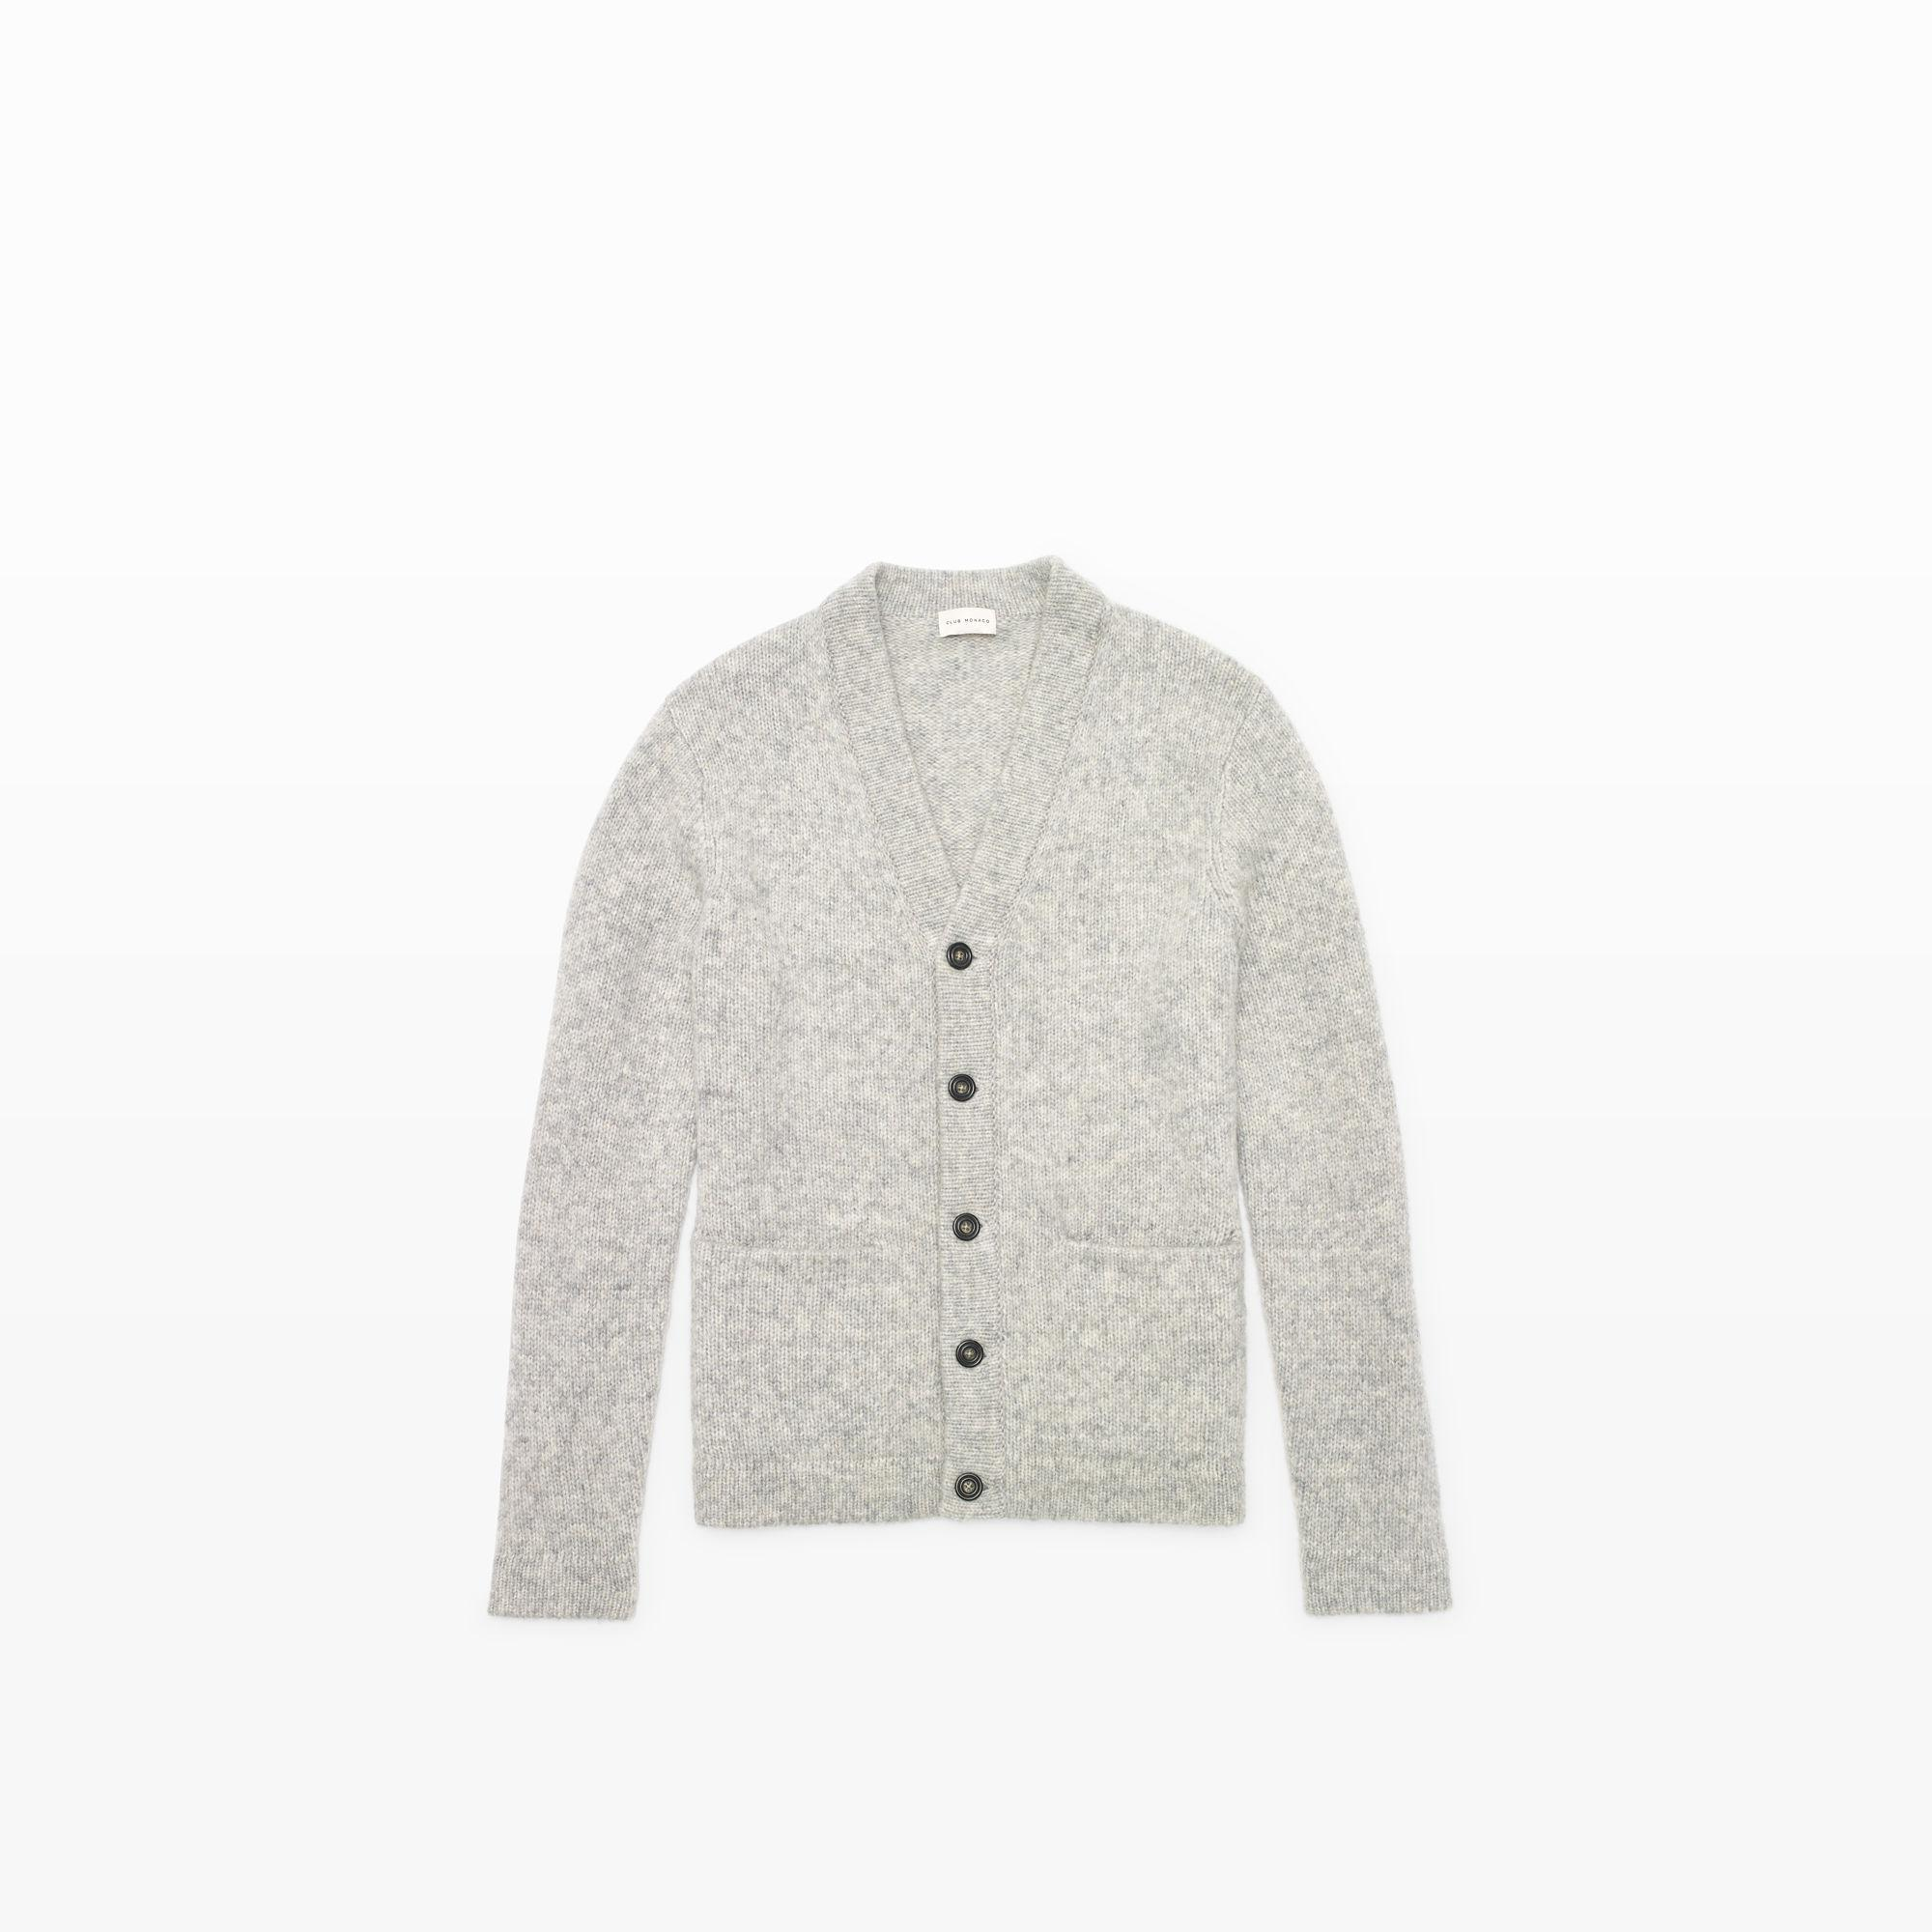 Club monaco Soft Wool Cardigan in Gray for Men | Lyst